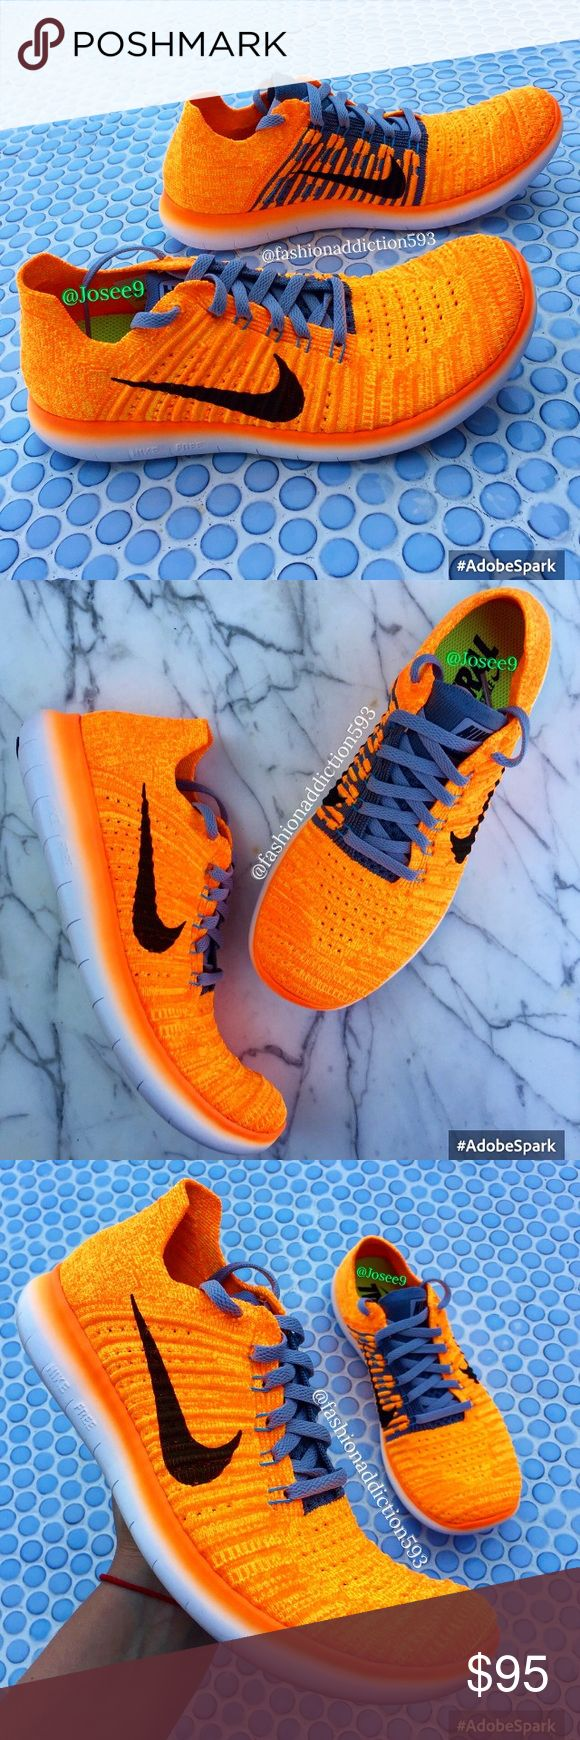 Nike free run flyknit women's orange white sneaker •Brand new •Authentic •Box not included •Please check out my listings for more Air Max Roshe and Running shoes Nike Shoes Sneakers